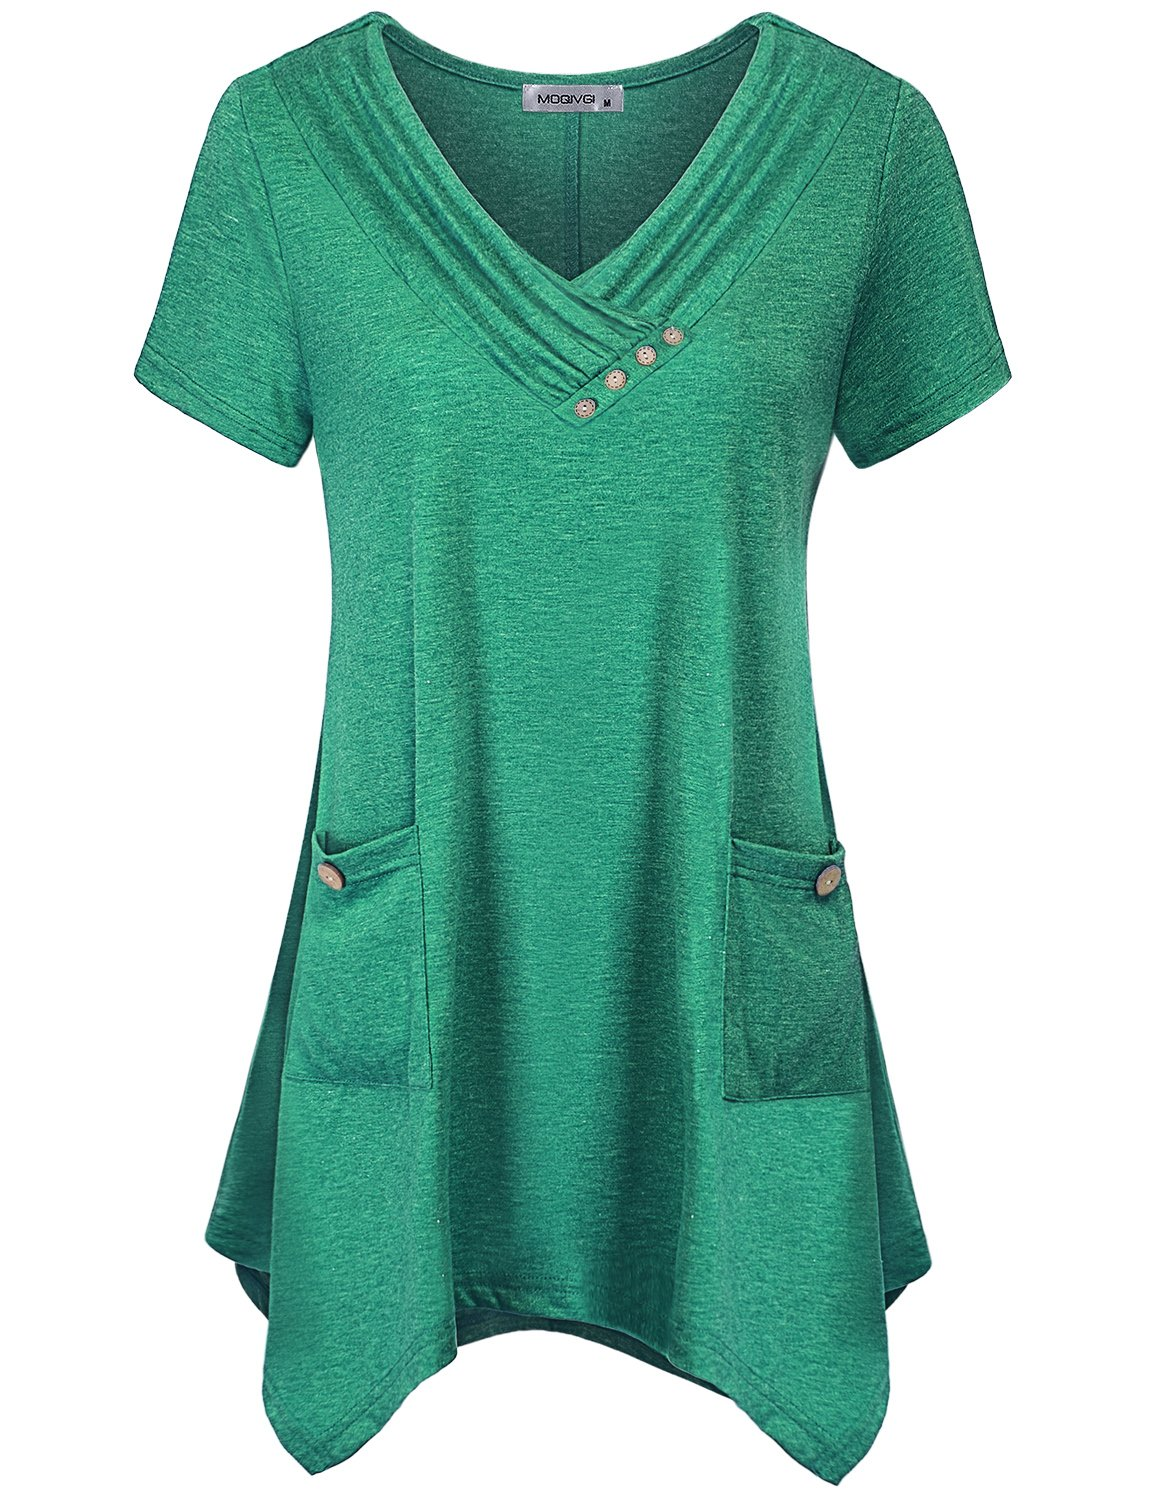 MOQIVGI Professional Blouses for Women,Misses Tops Office wear Ladies Short Sleeve V Neck Uneven Hem Semi-Formal Tops Embellished Button Elegant Dressy Latest Tunic Shirts Green Medium